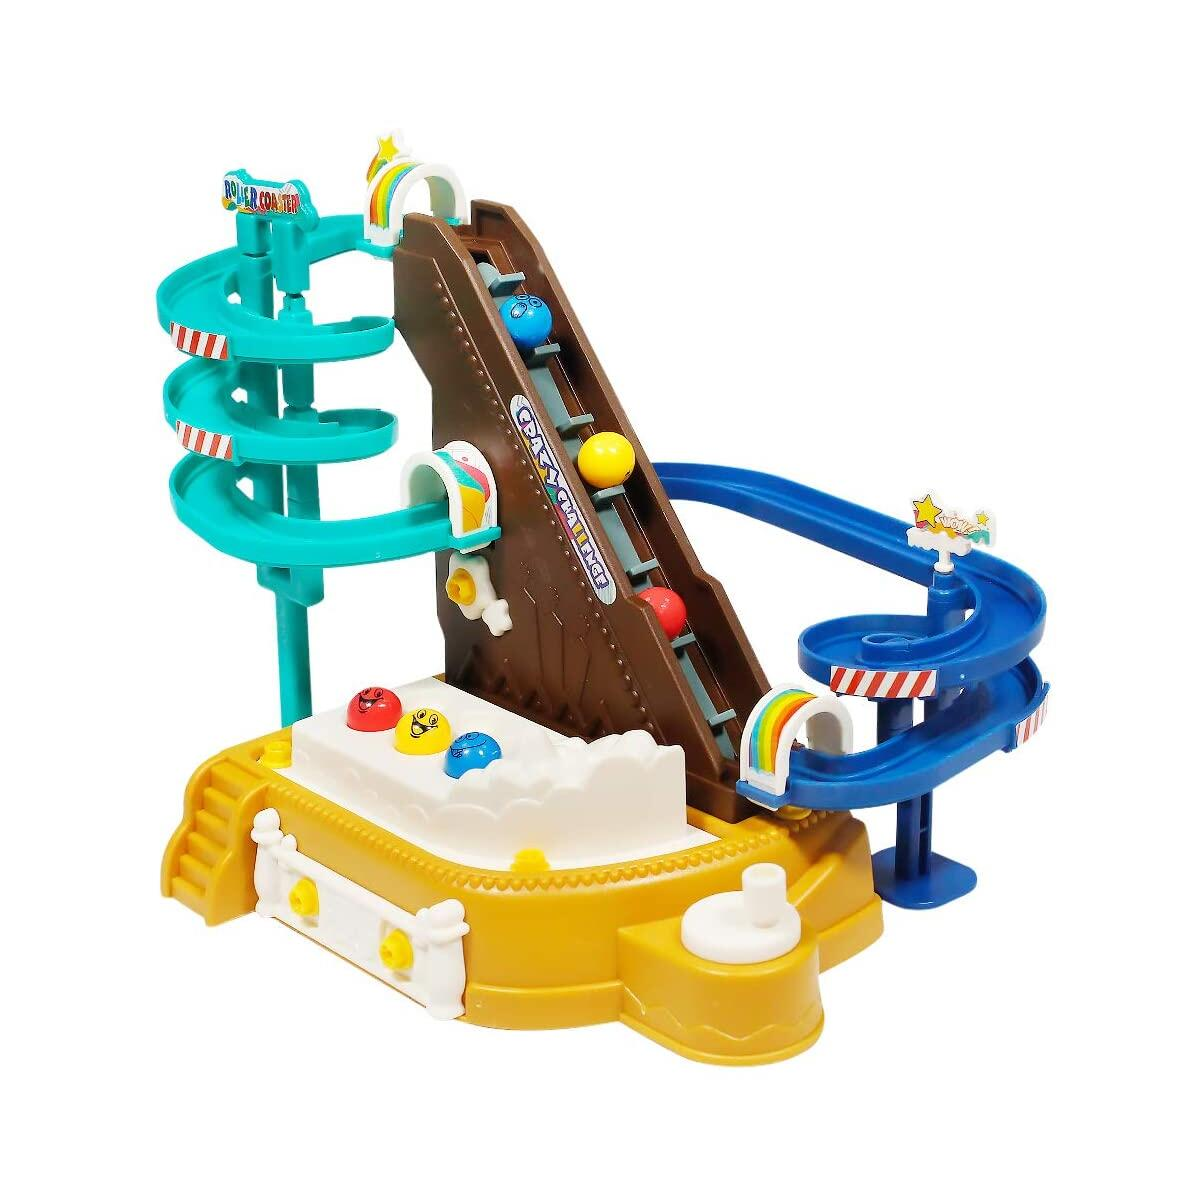 Yueda Ball Run Toy, Ball Drop Toy DIY Toy Building Sets Marble Run Race Track for Toddlers 3 4 5 6 Year Old Boys & Girls